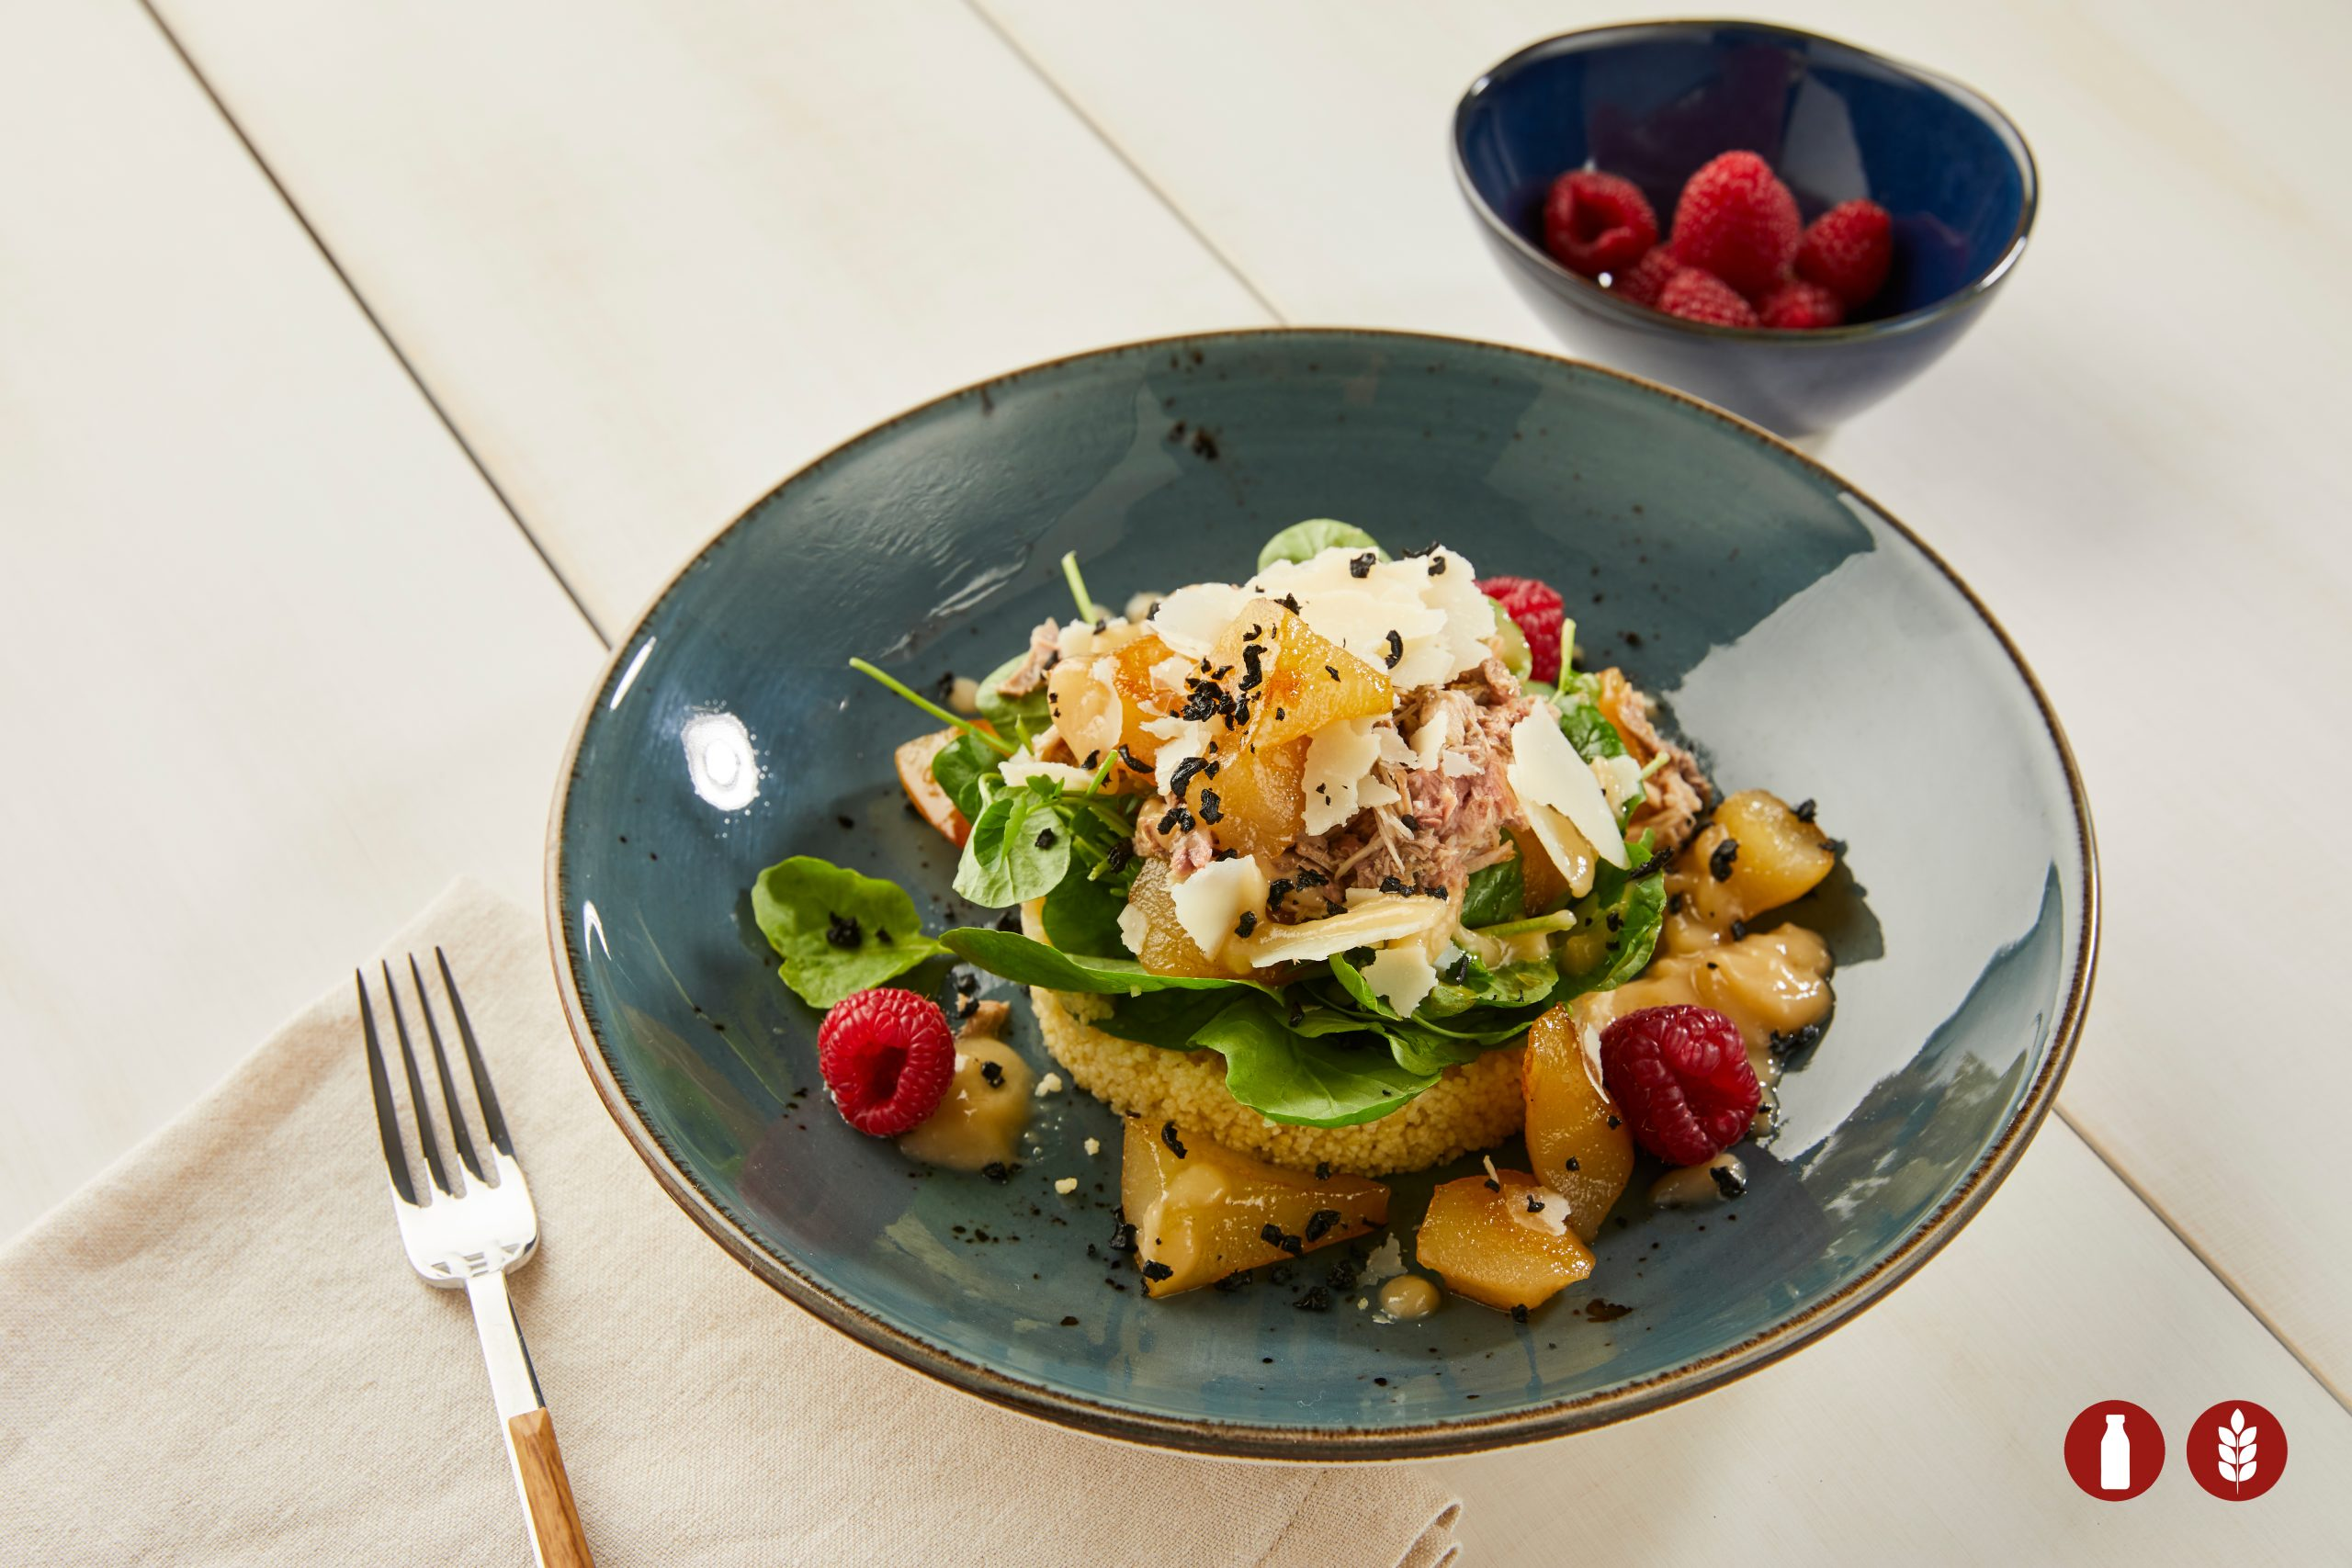 WATERCRESS SALAD WITH MARINATED PARTRIDGE AND CARAMELIZED PEARS